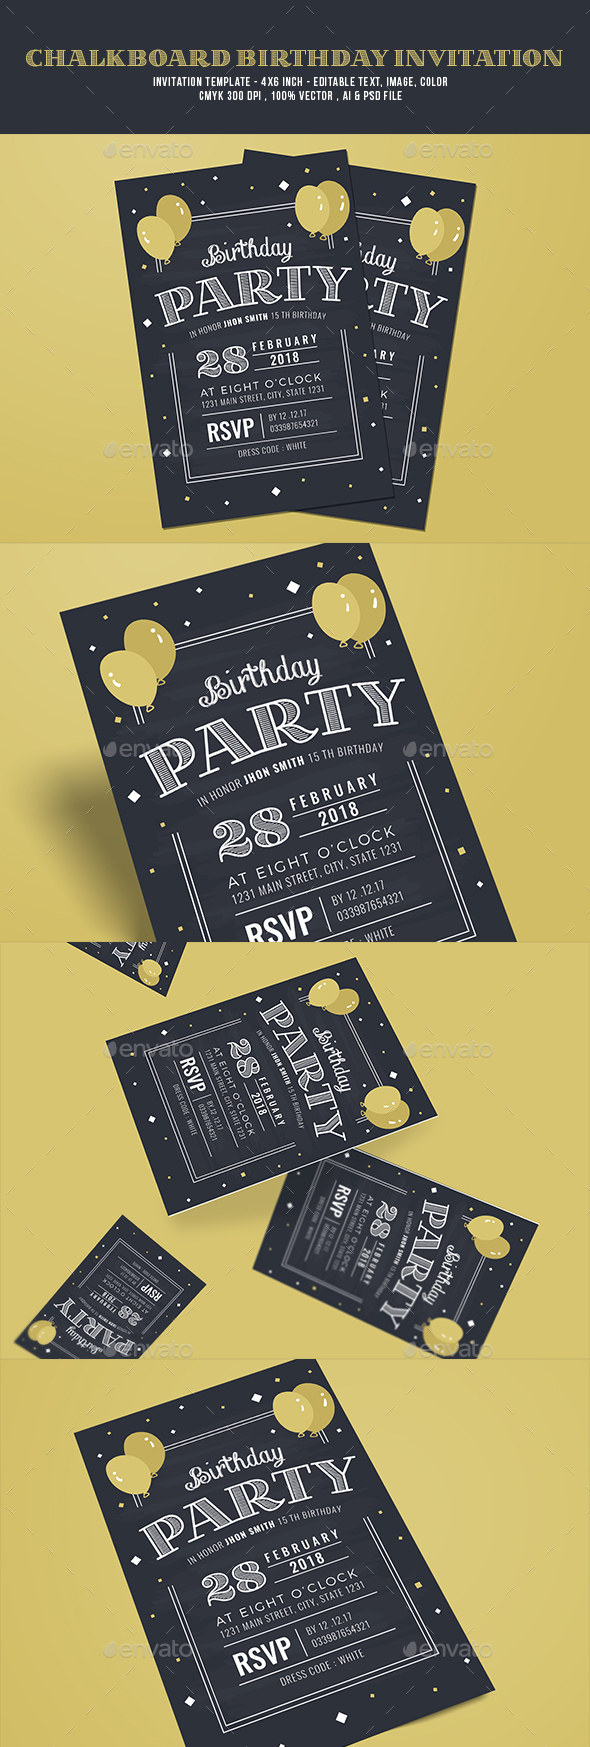 Chalkboard birthday invitation by guuver graphicriver chalkboard birthday invitation invitations cards invites filmwisefo